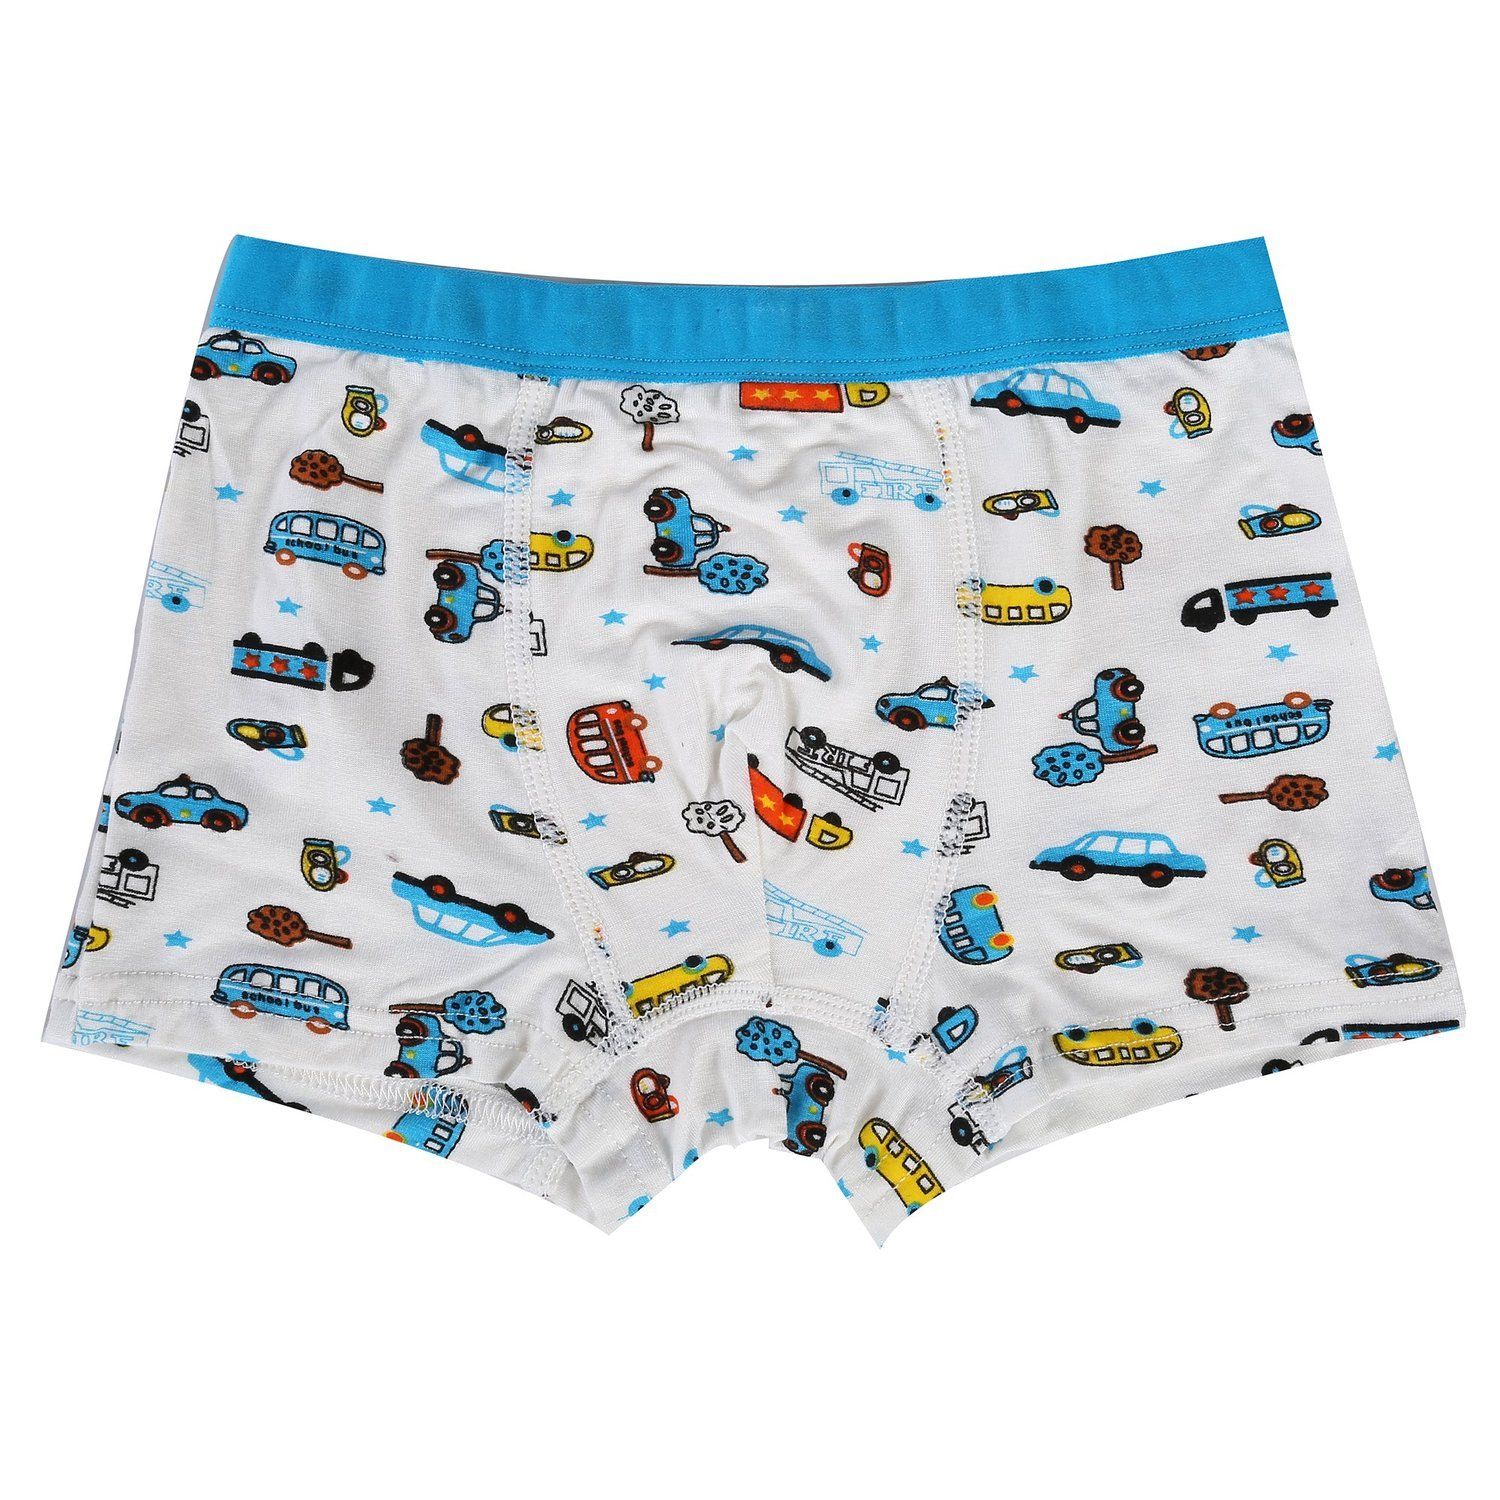 Bala Bala Boy's Boxer Brief Multicolor Underwear (Pack Of 5) (XL/Car Underwear, (Pack Of 5)/Car Underwear) by Bala Bala (Image #7)